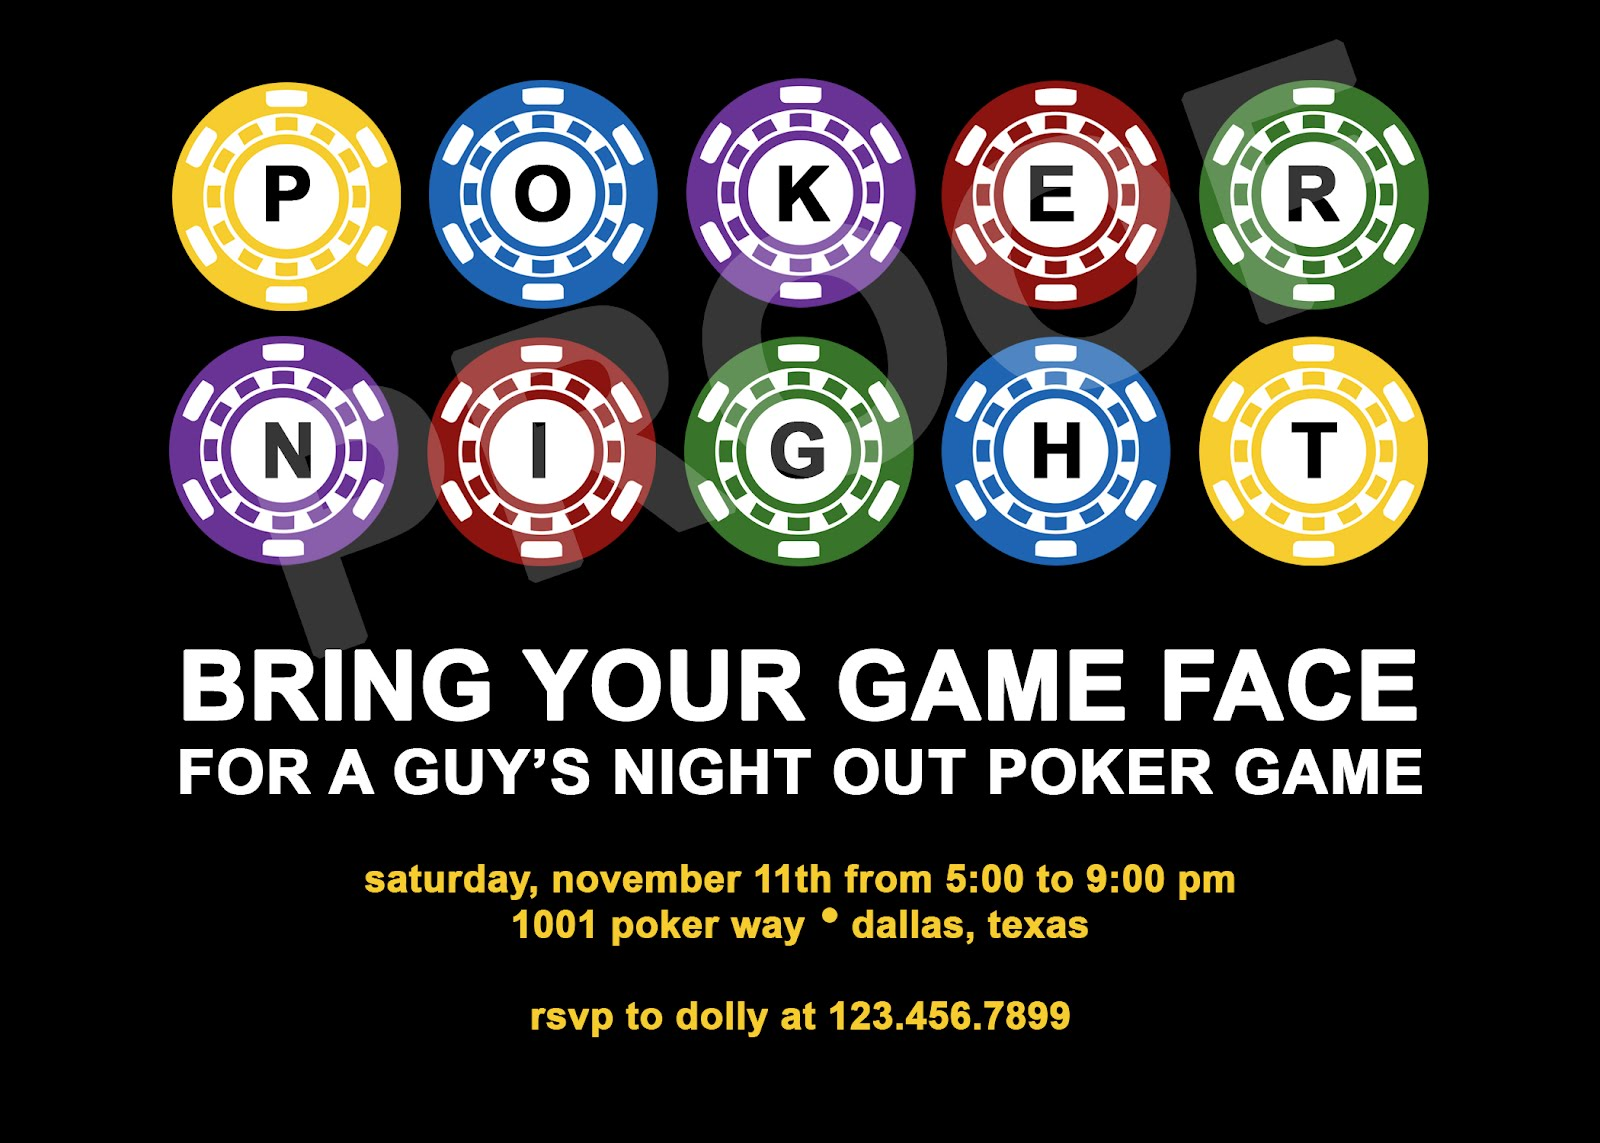 Get out poker night walkthrough